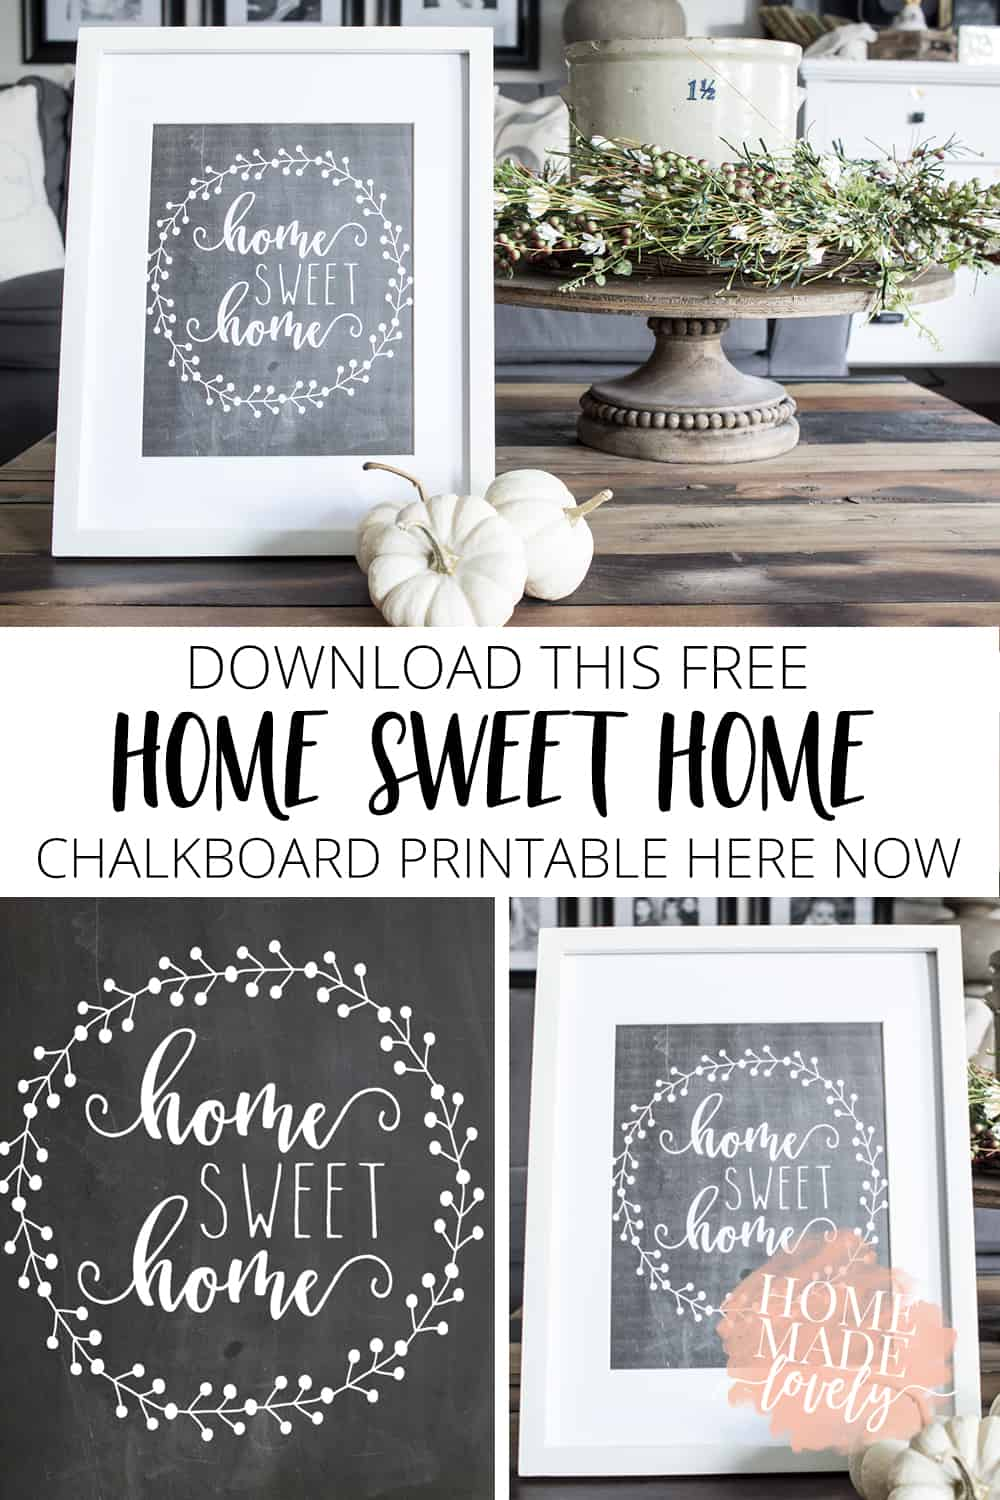 image relating to Free Printables for Home called Down load This No cost House Adorable House Chalkboard Printable Listed here Currently